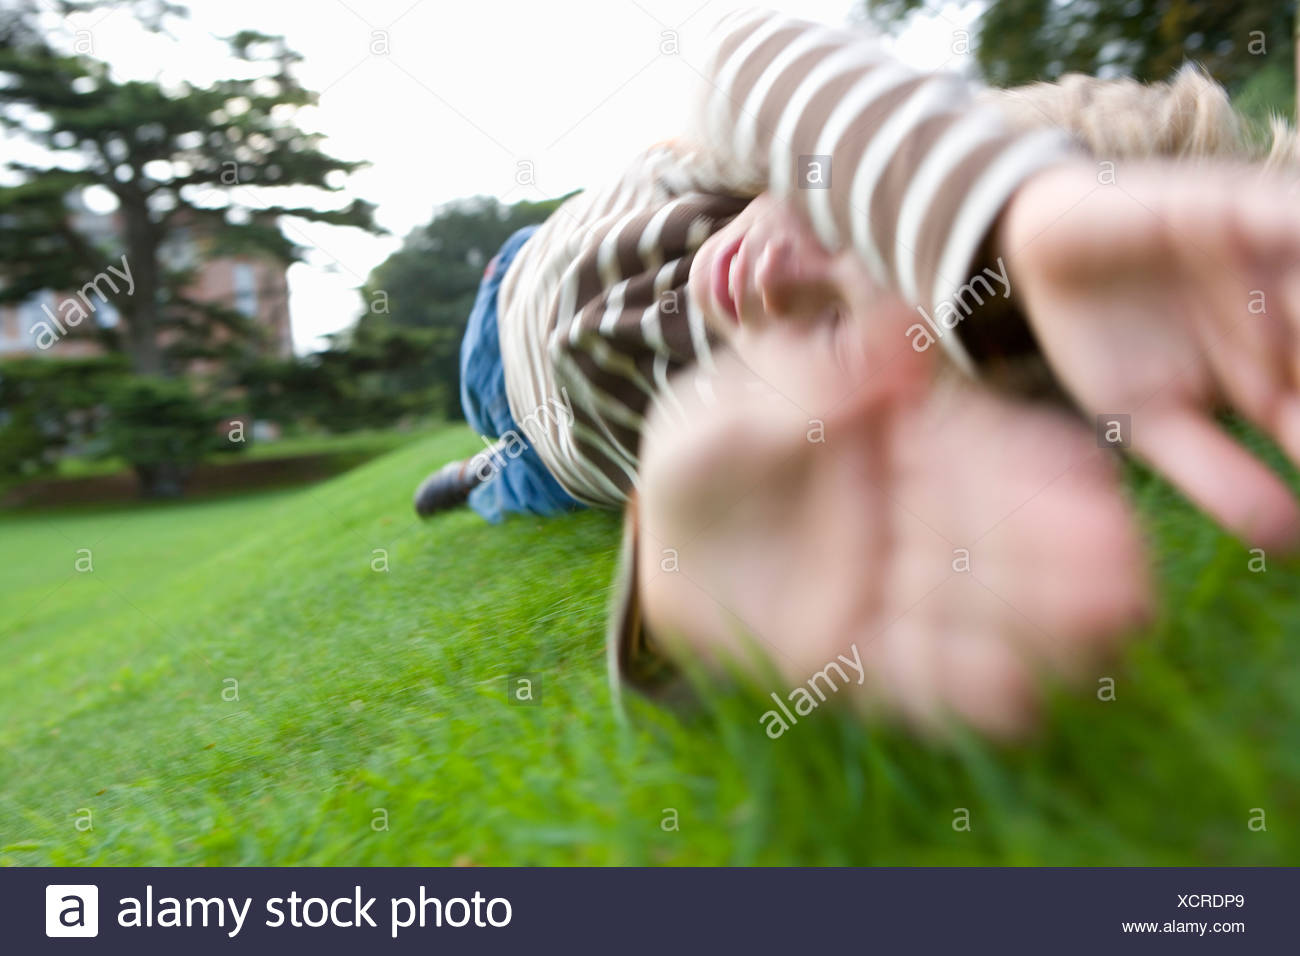 Boy (10-12) rolling down hill - Stock Image